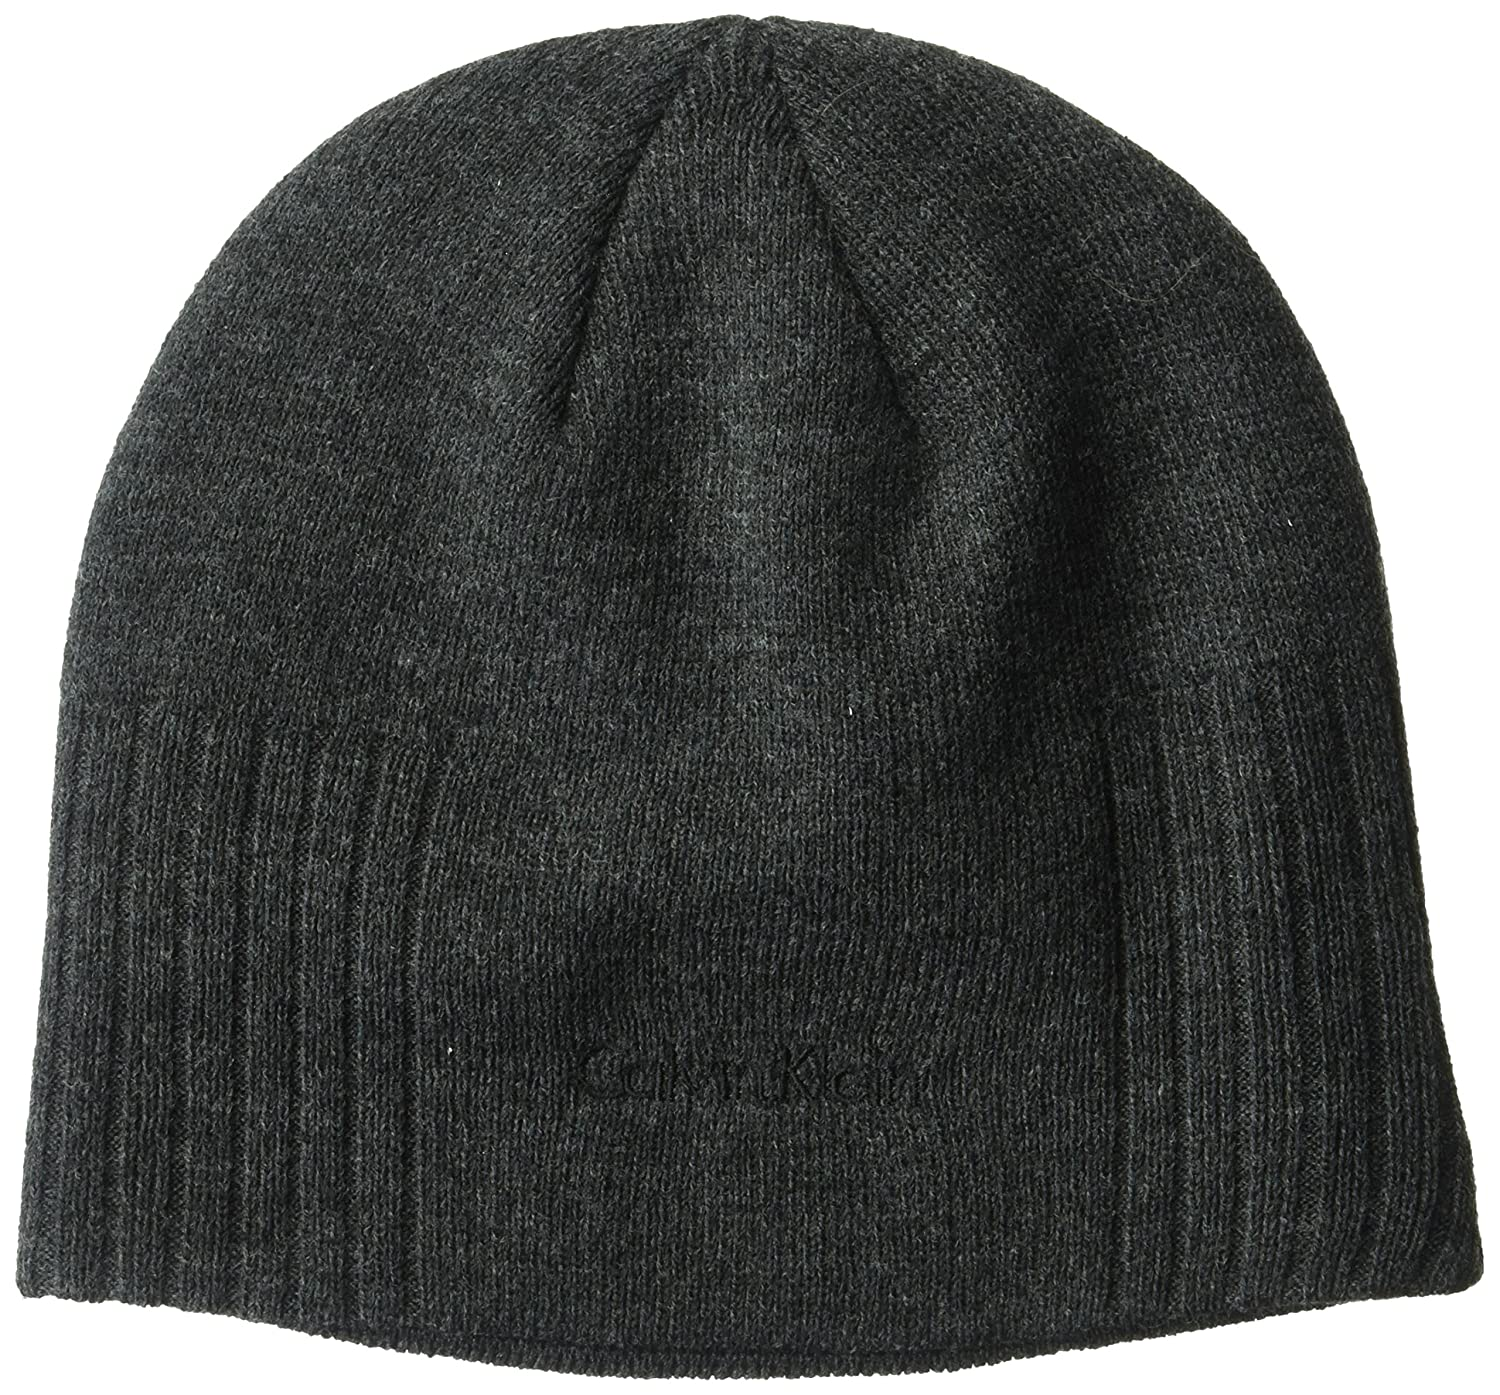 Calvin Klein Unisex New Rib Beanie Winter Hat, Charcoal, One Size HCKHT214